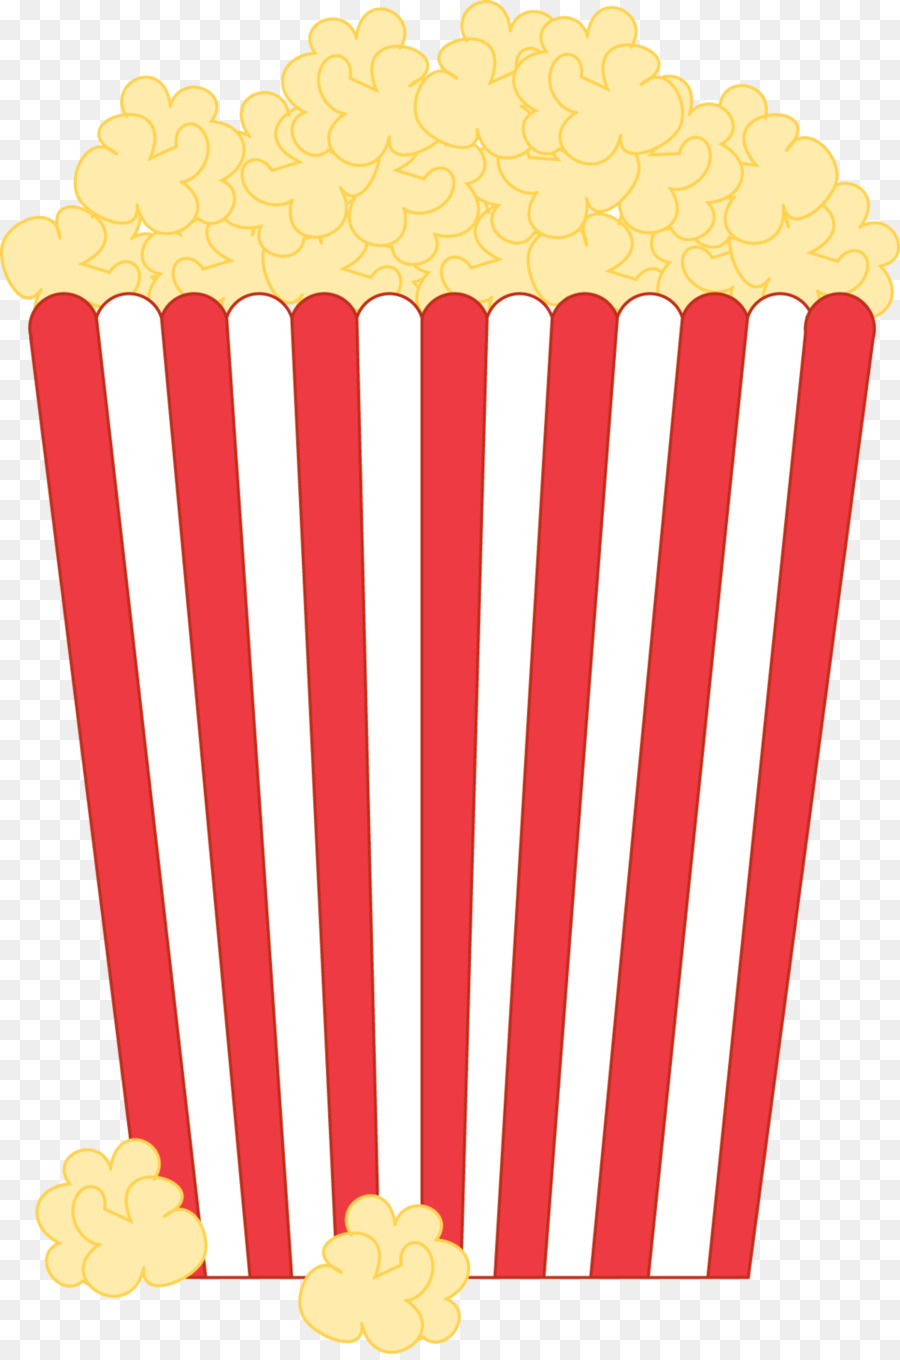 Popcorn, Desktop Wallpaper, Cinema, Snack, Food Png.